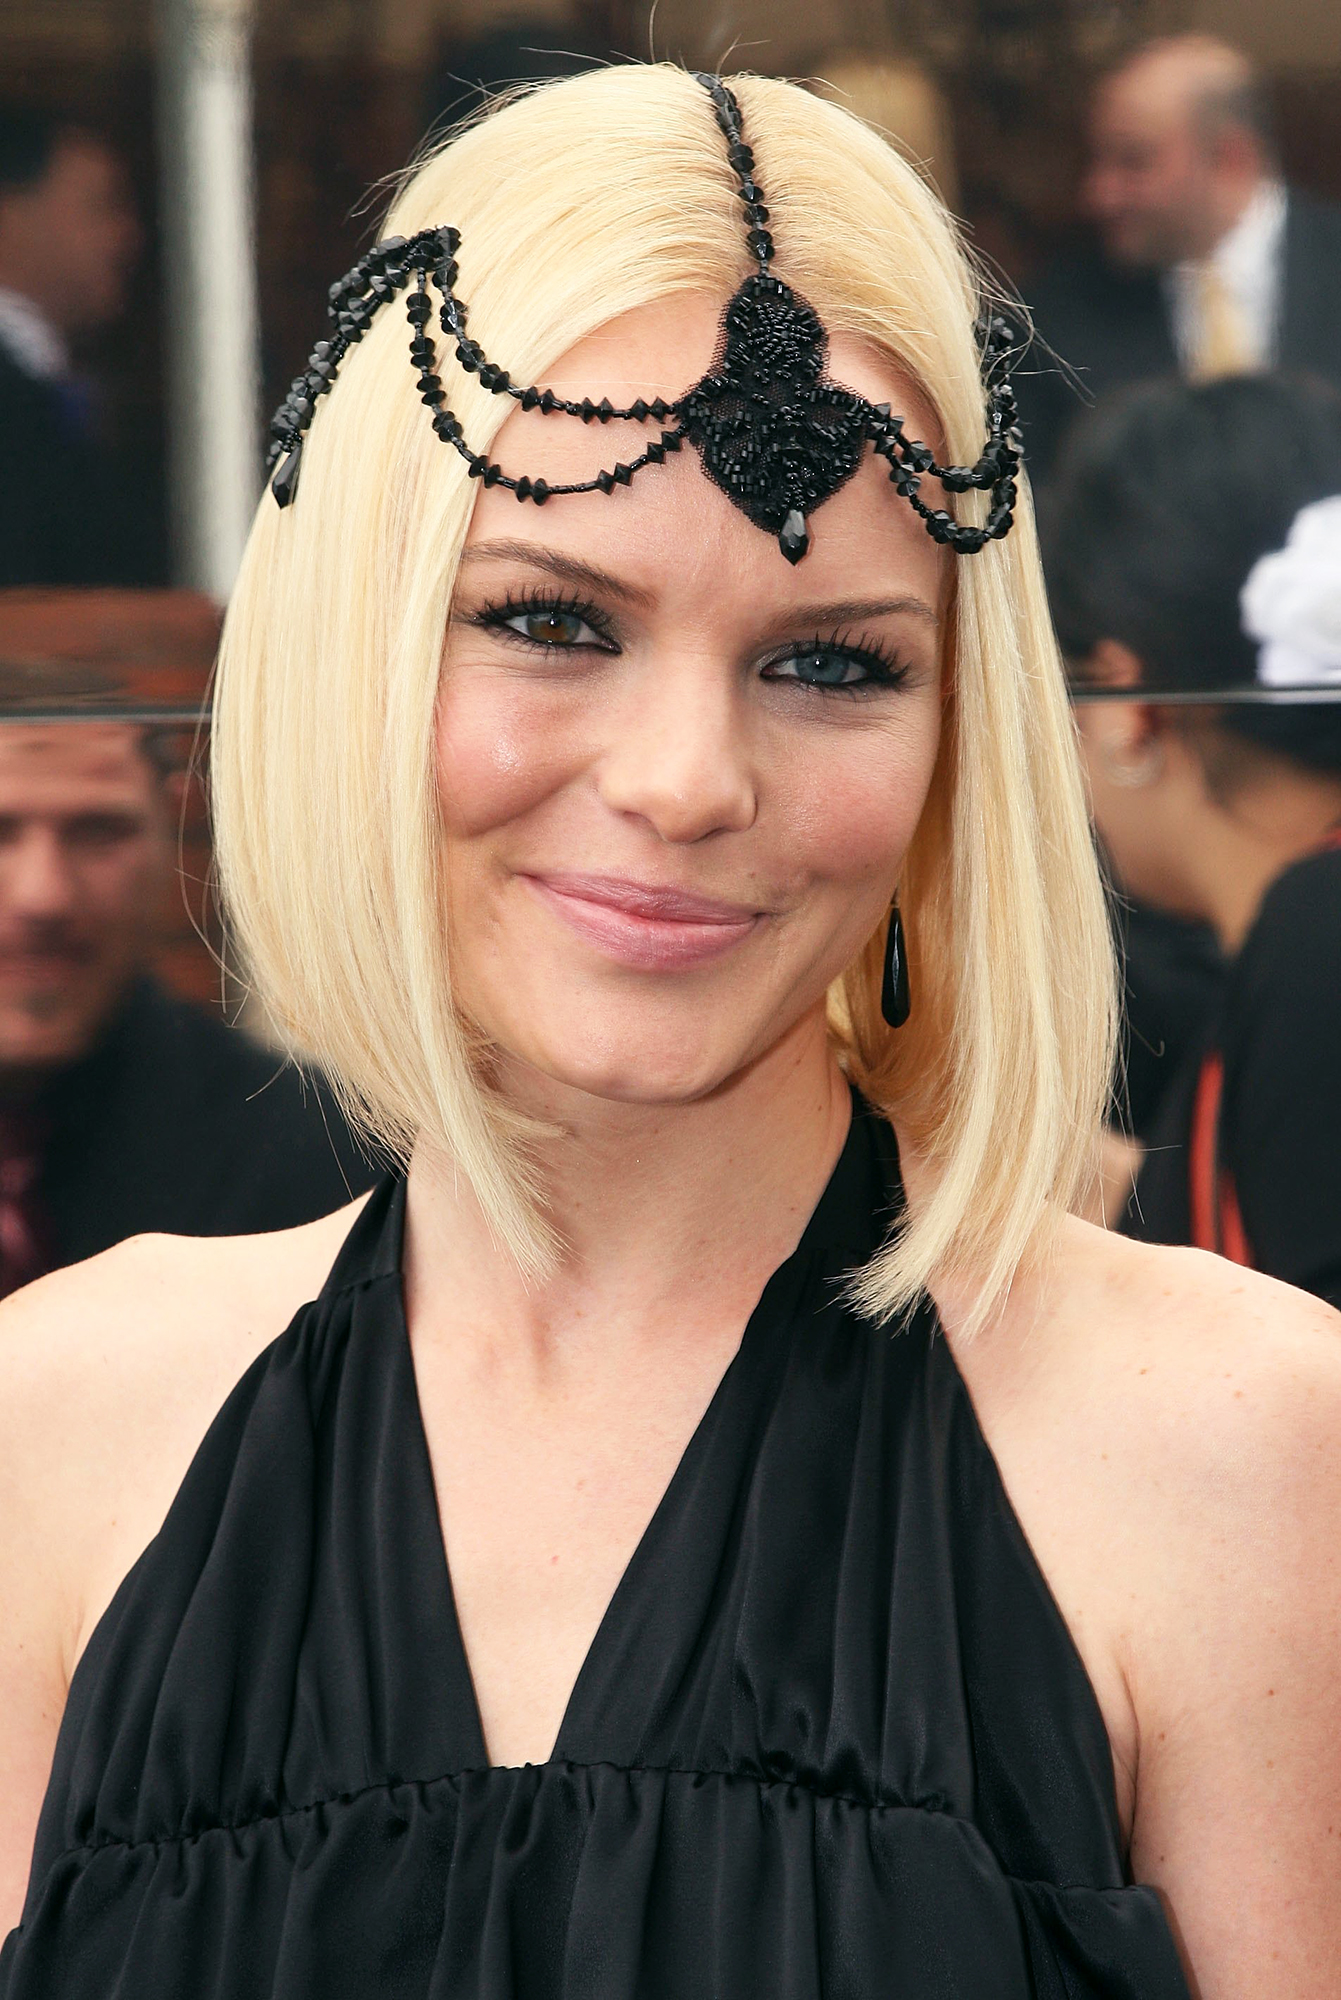 See Birthday Girl Kate Bosworth's Best Beauty Moments - A 1920s flapper-inspired black beaded headdress popped against her platinum locks at the 2006 Melbourne Cup in Australia.